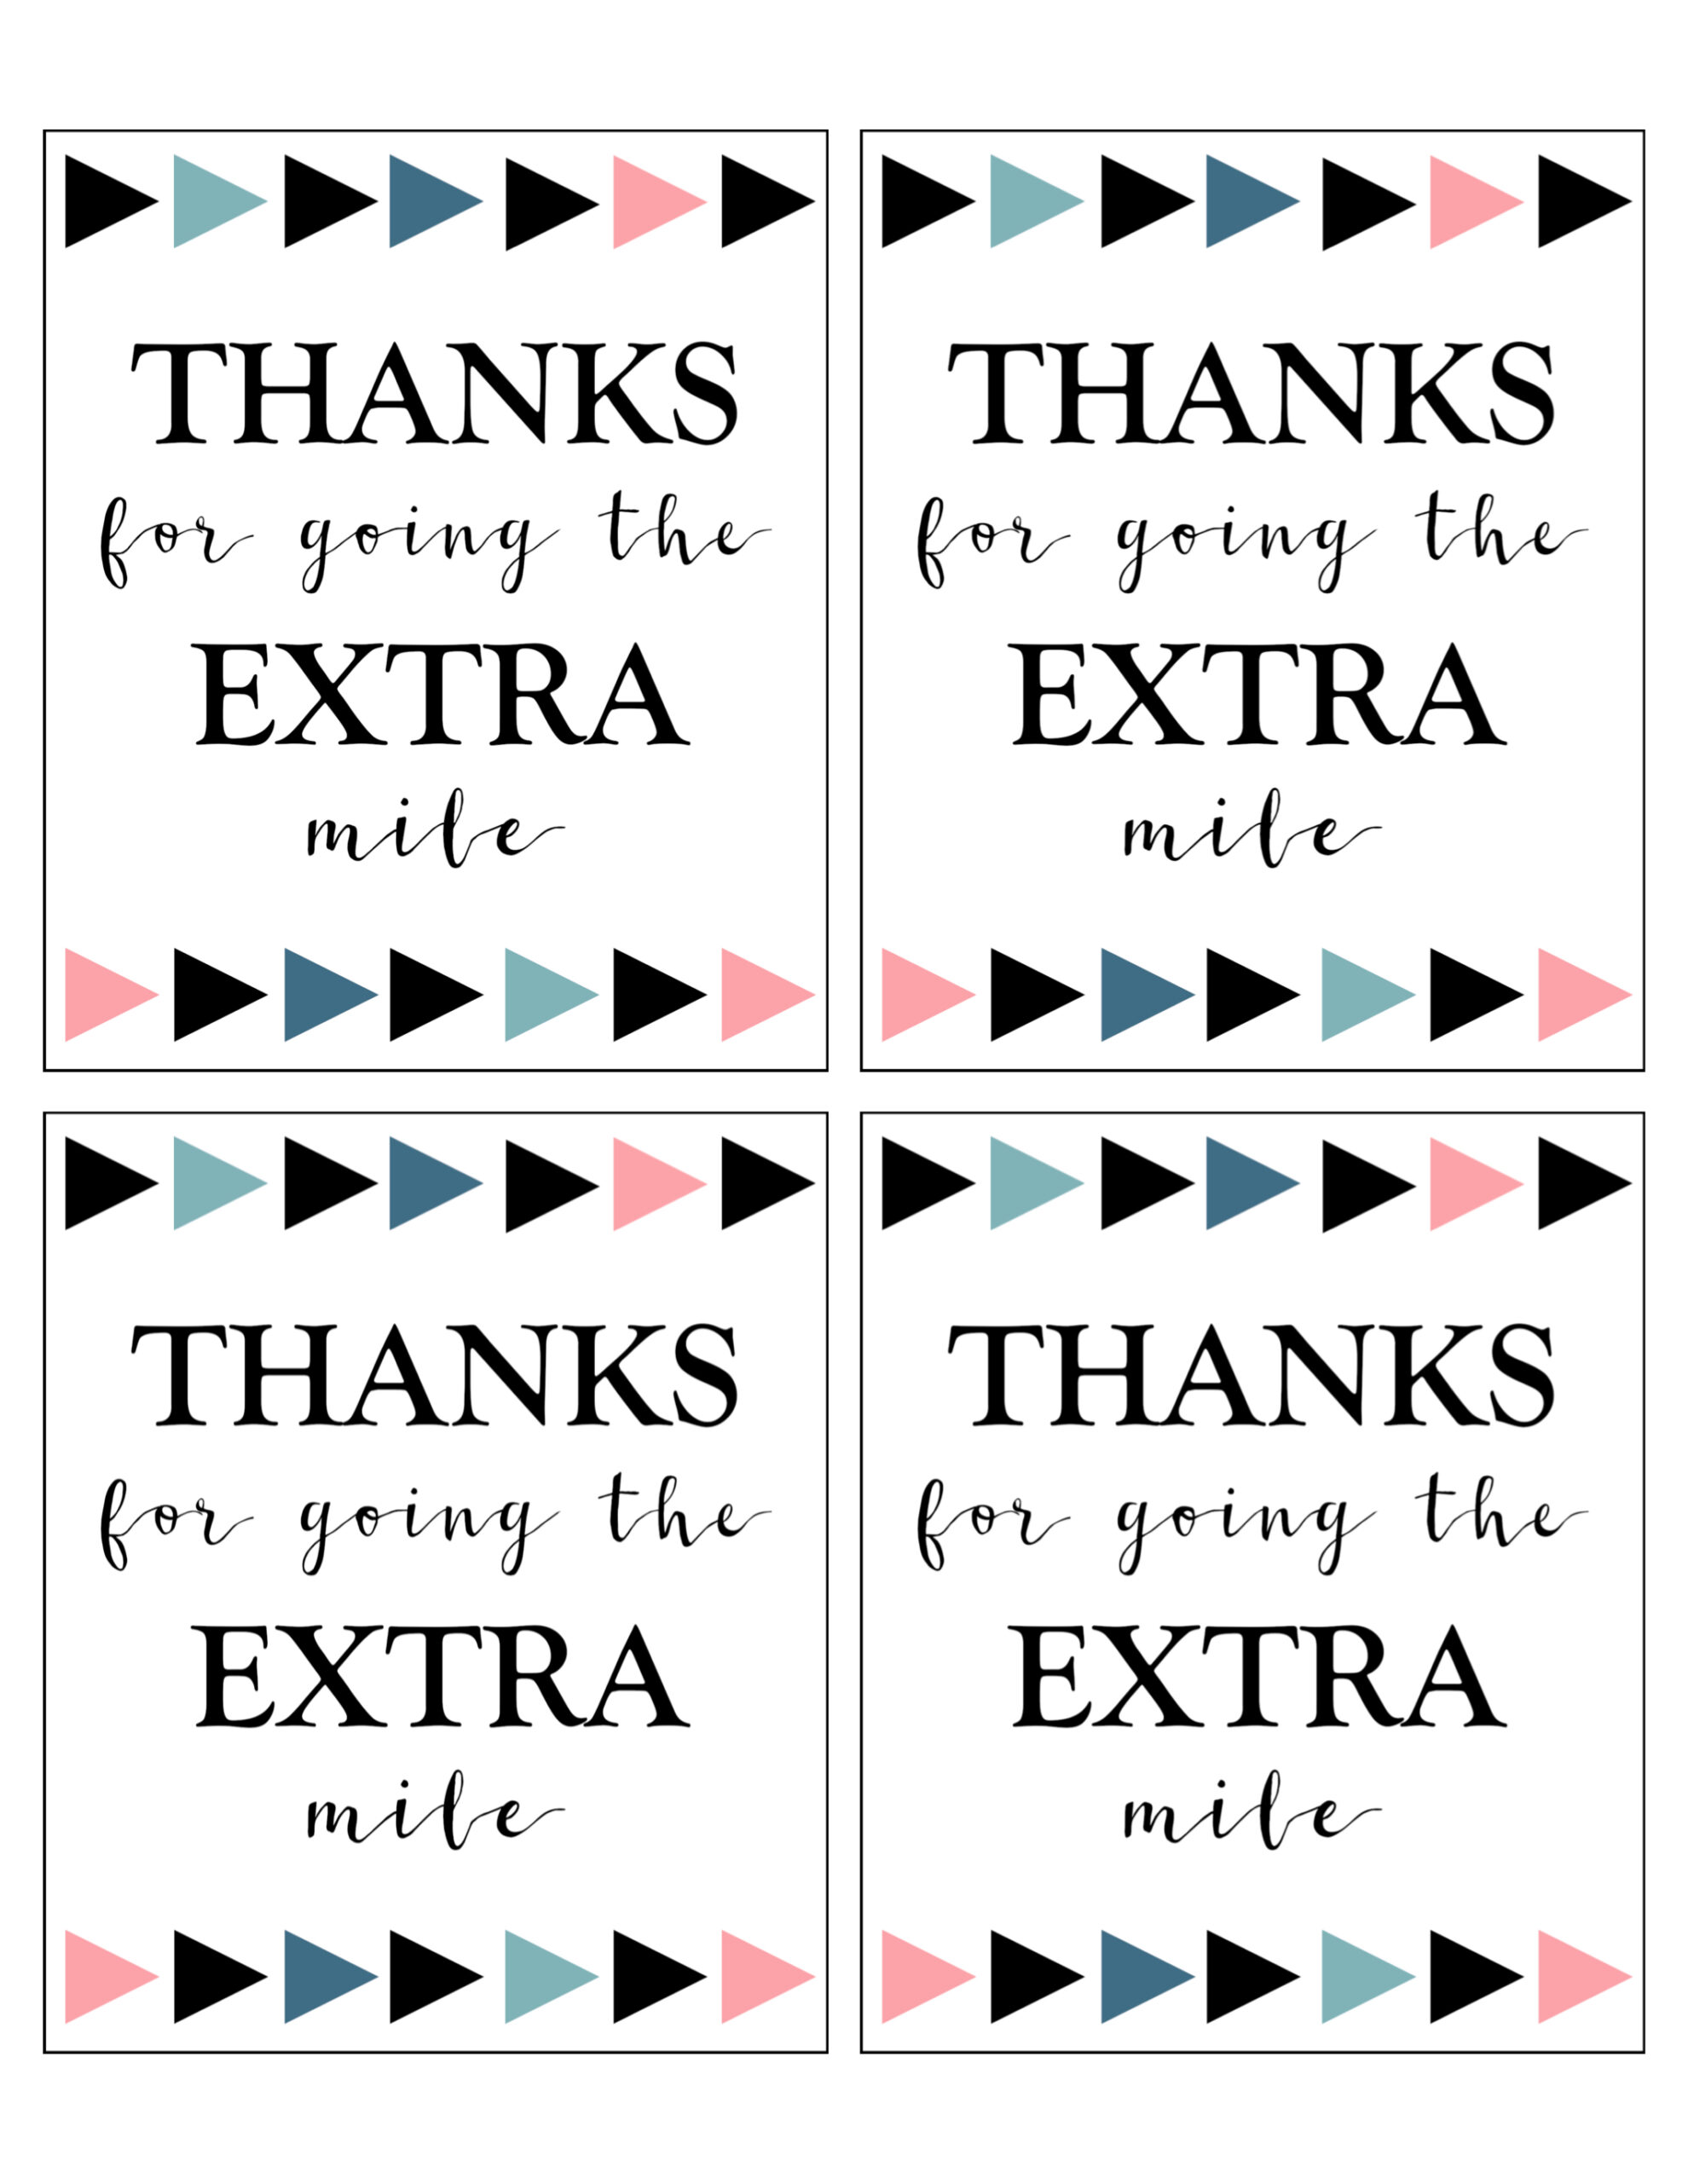 photo about Extra Gum Teacher Appreciation Printable named Additional Gum Thank On your own Printable - Paper Path Style and design